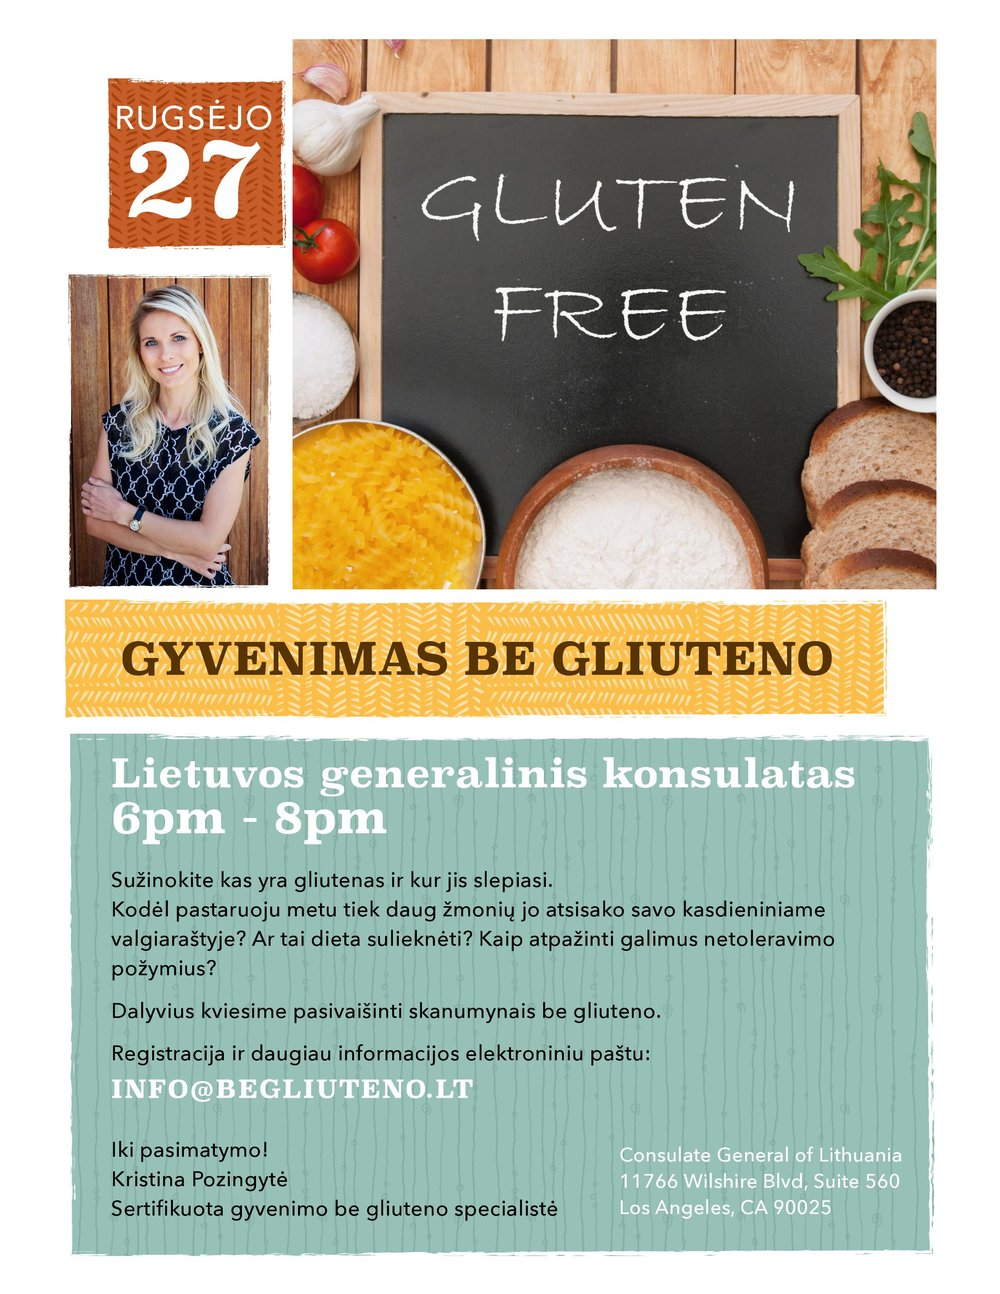 Gluten free event Los Angeles.jpg